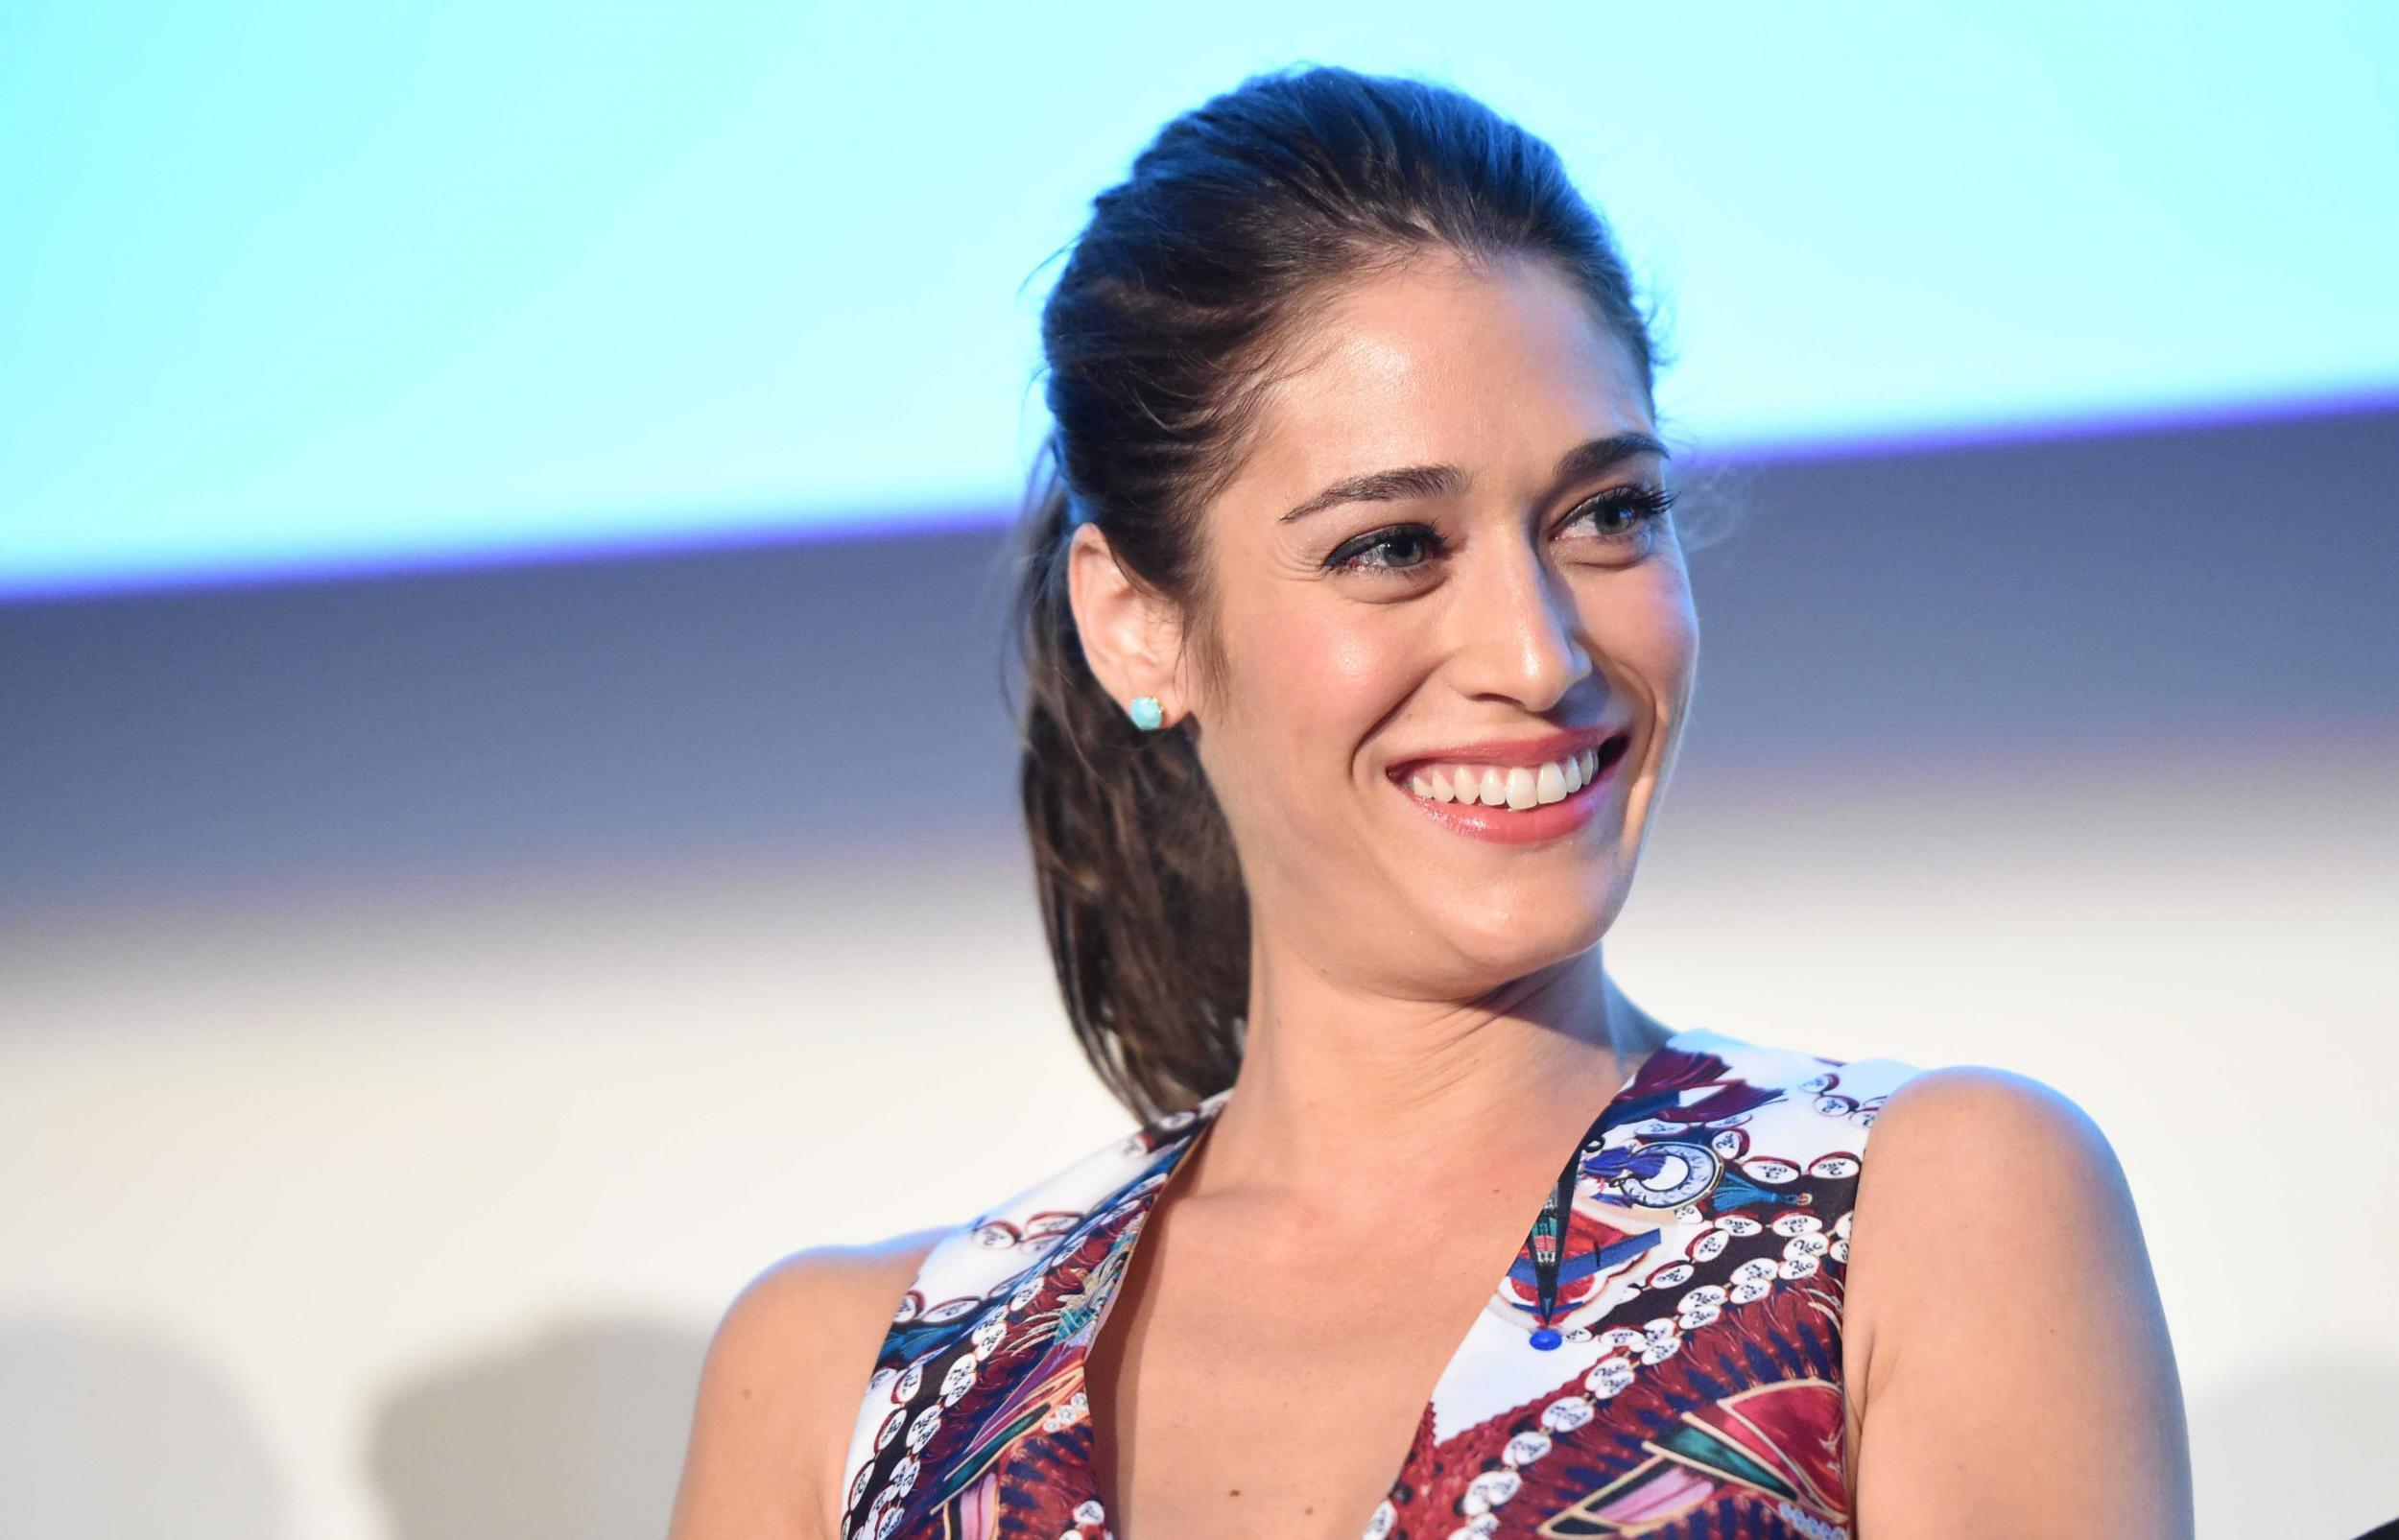 Forum on this topic: Sandra Warner, lizzy-caplan/